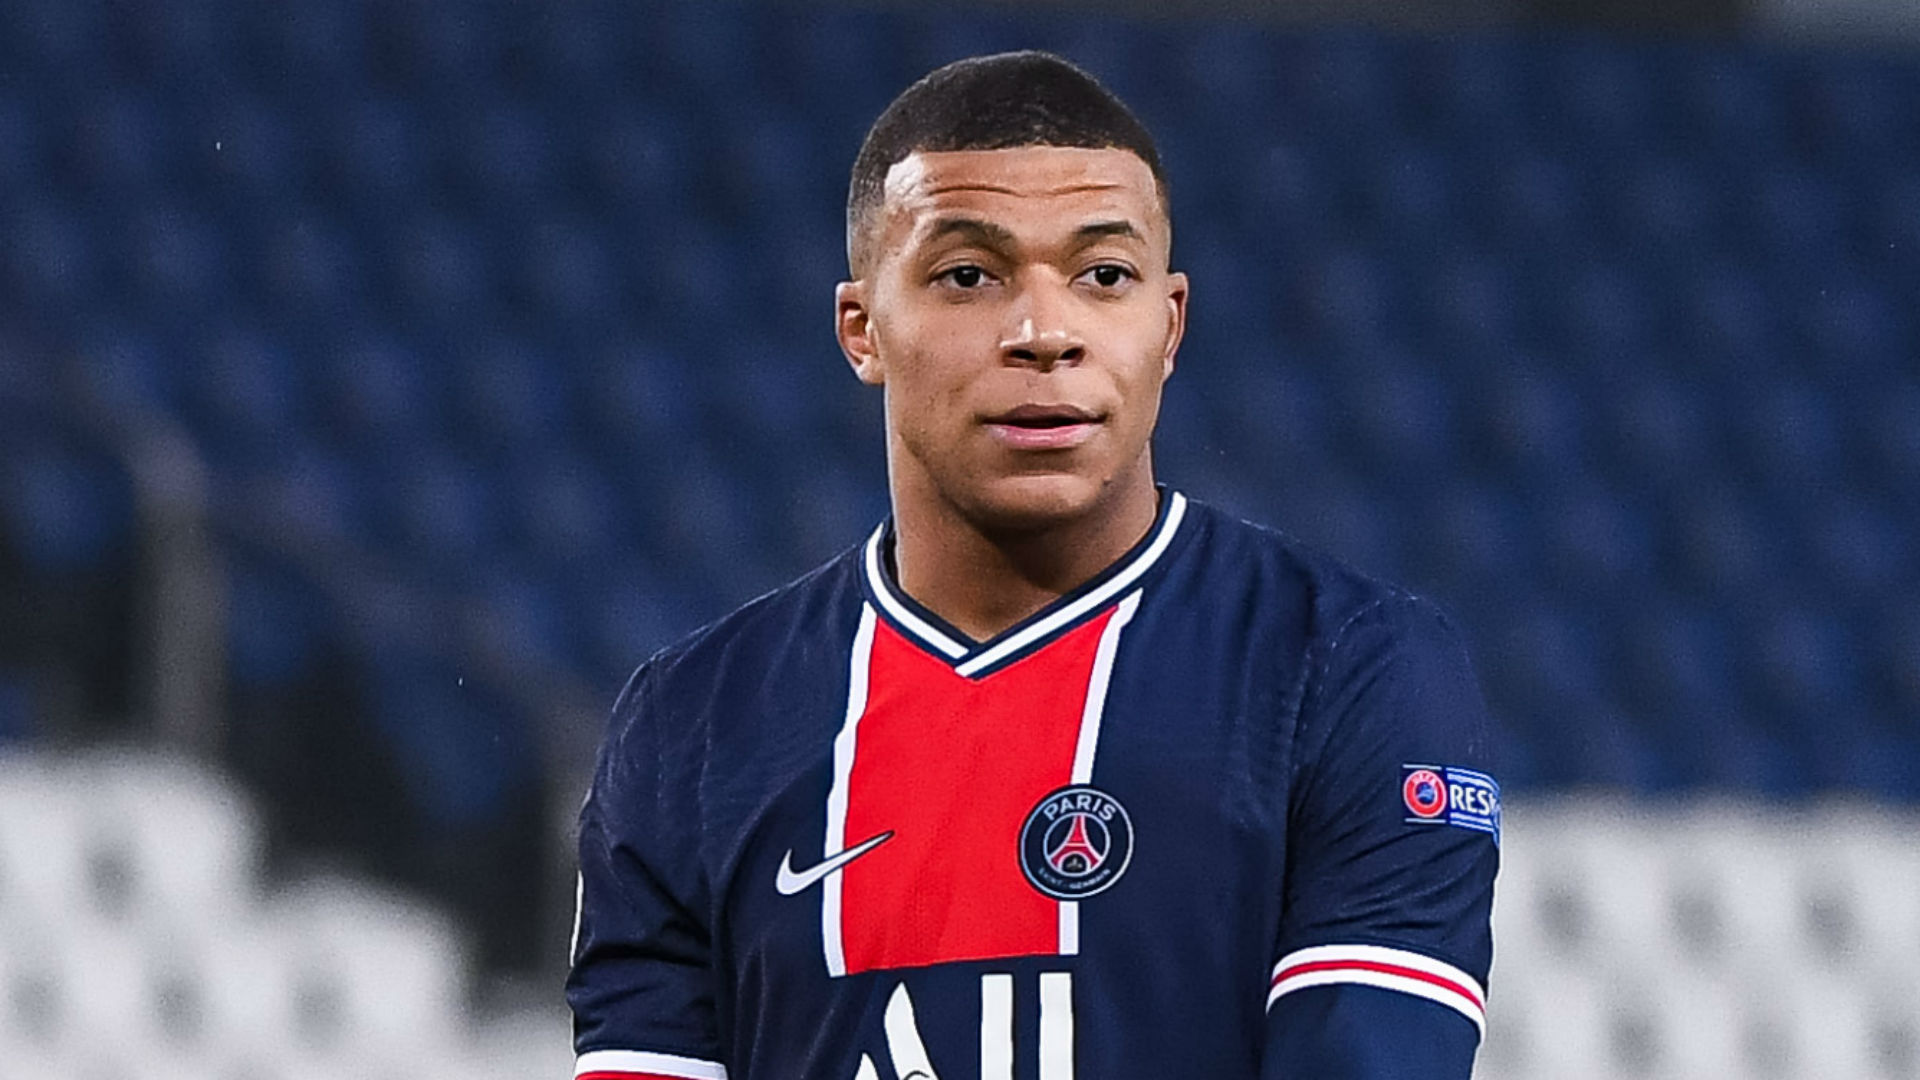 Pochettino backs 'special' Mbappe to find his best form